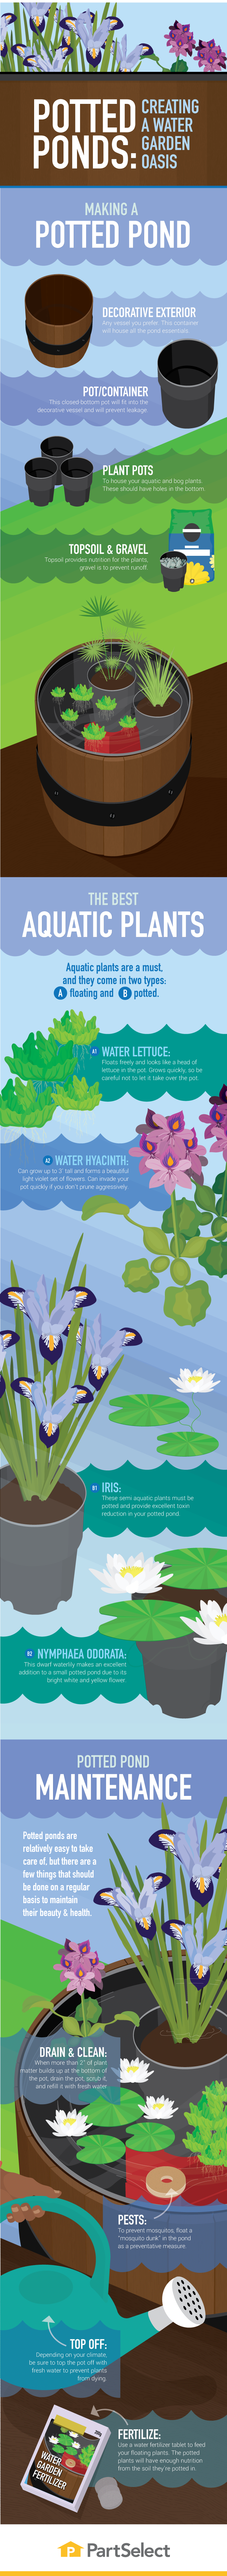 How to Create a Potted Garden Pond - Infographic